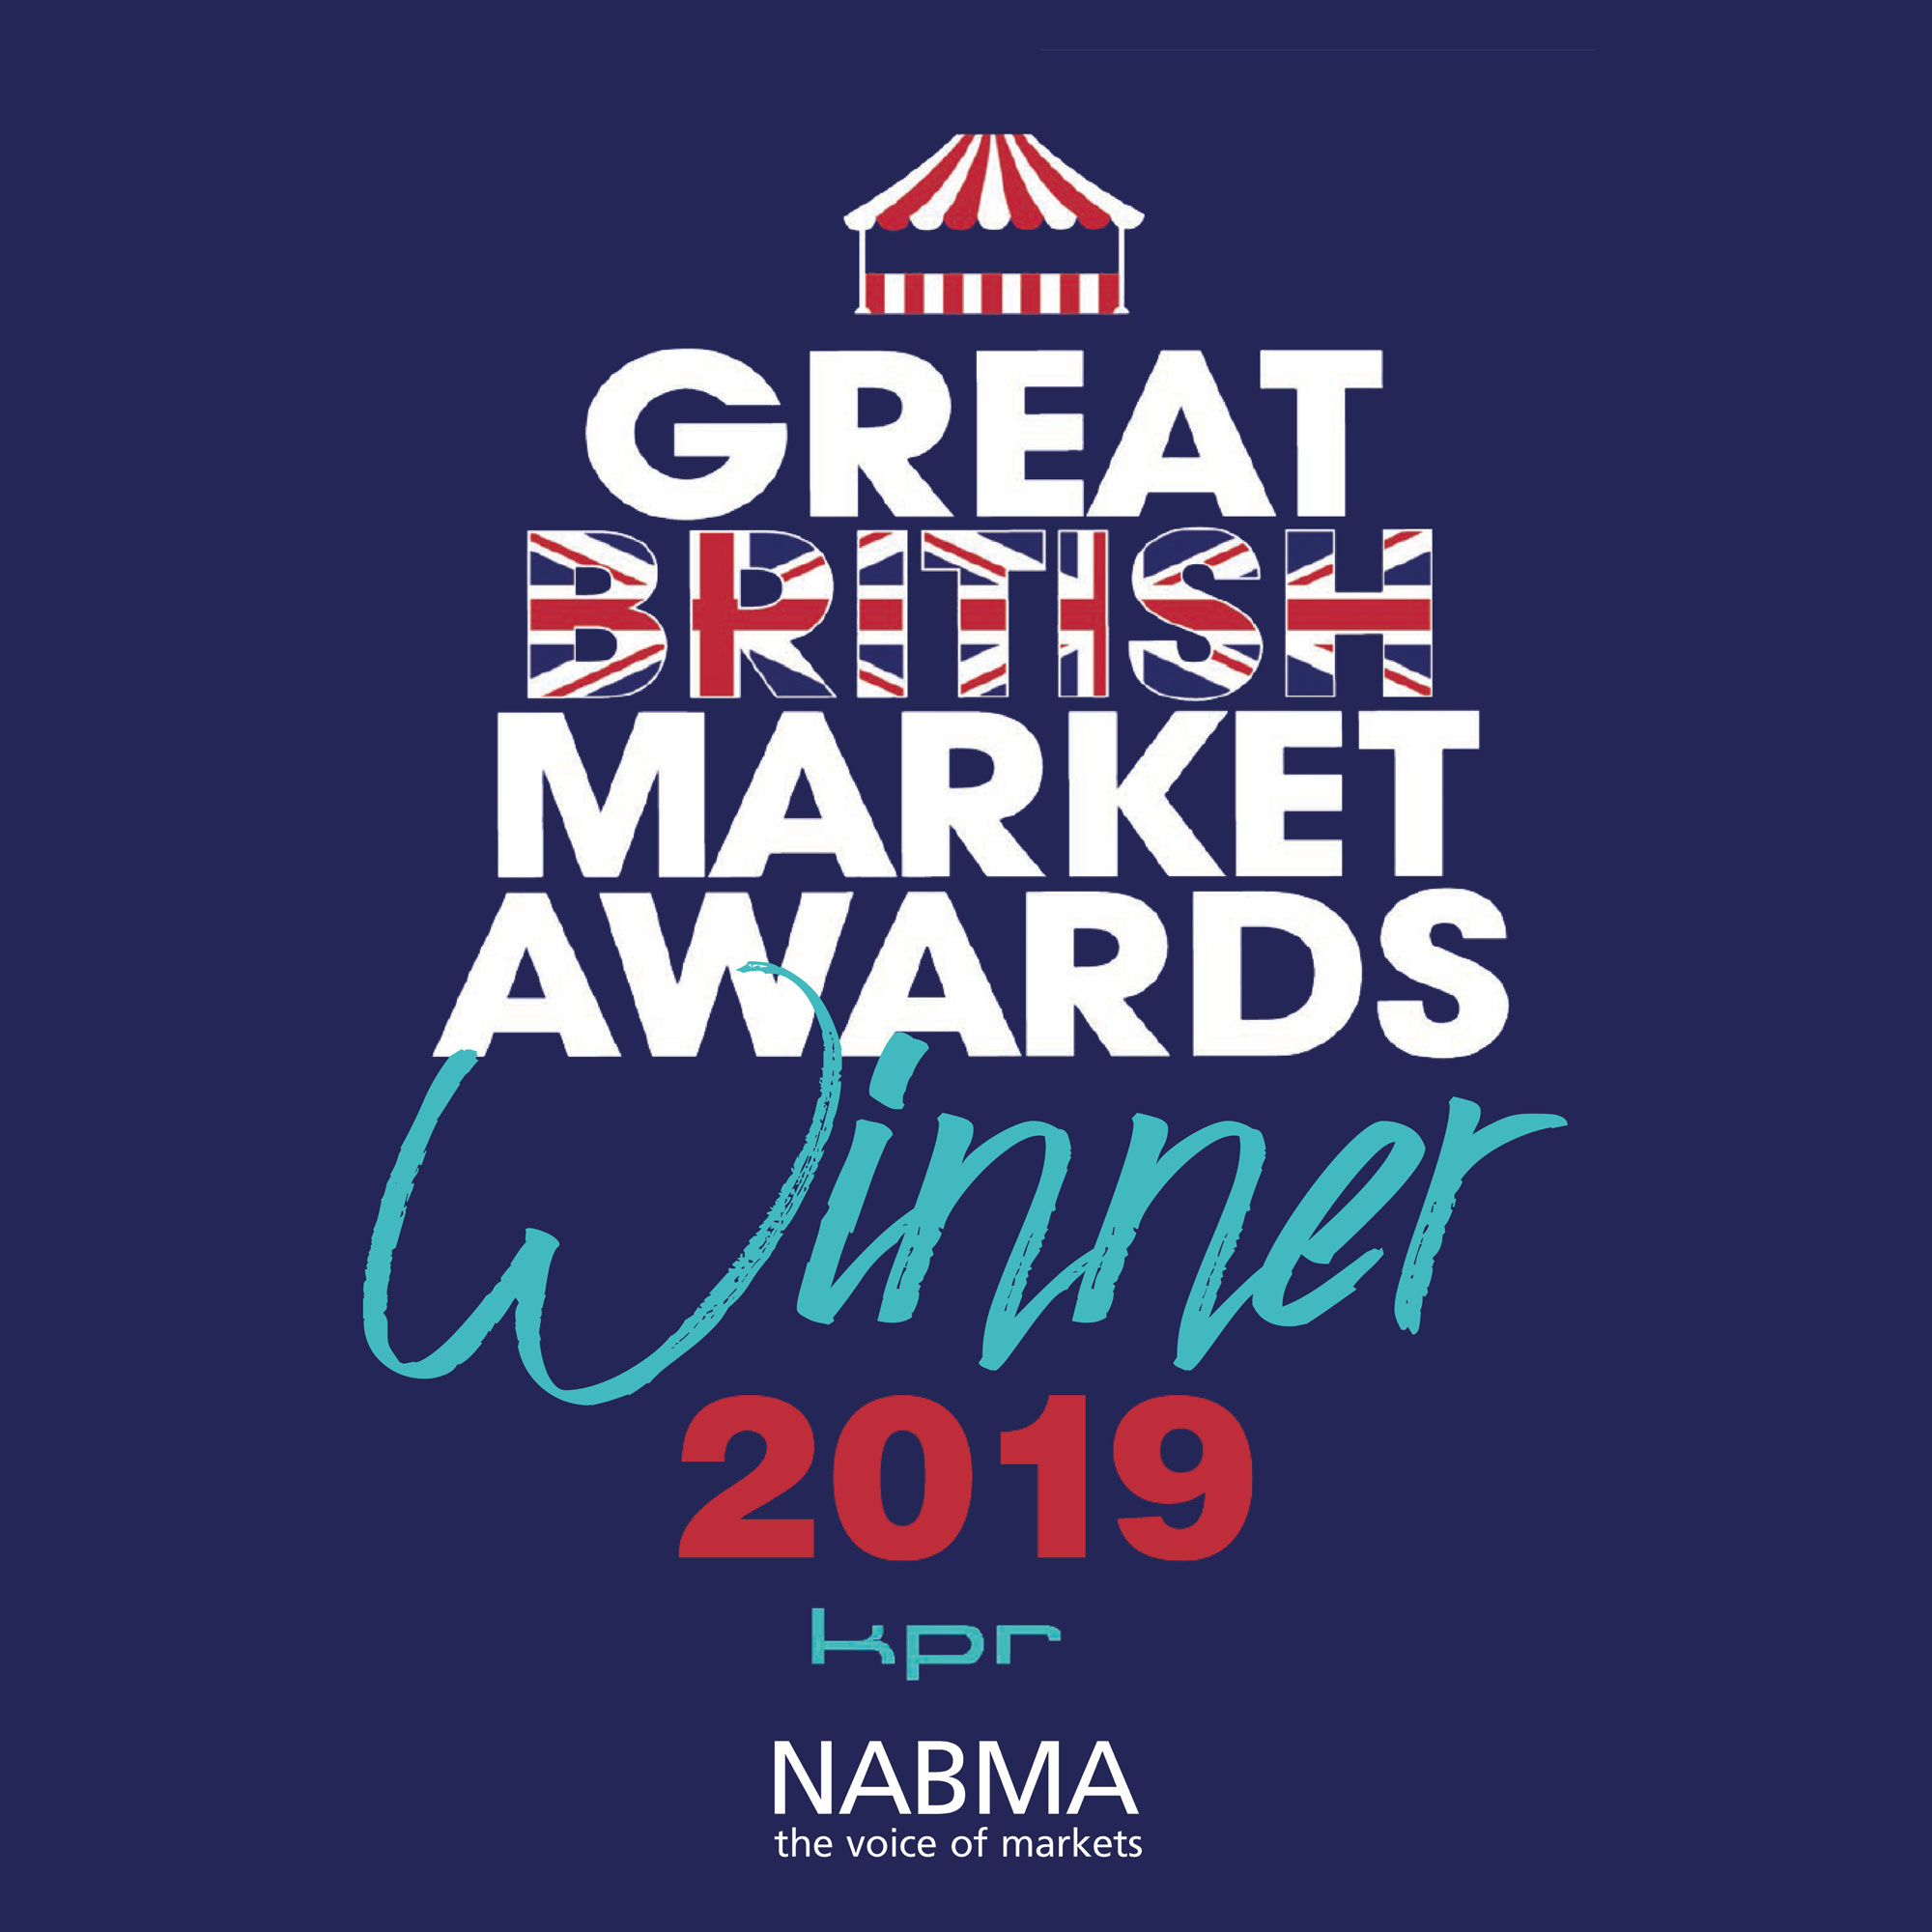 Winner of the British Market Award 2019